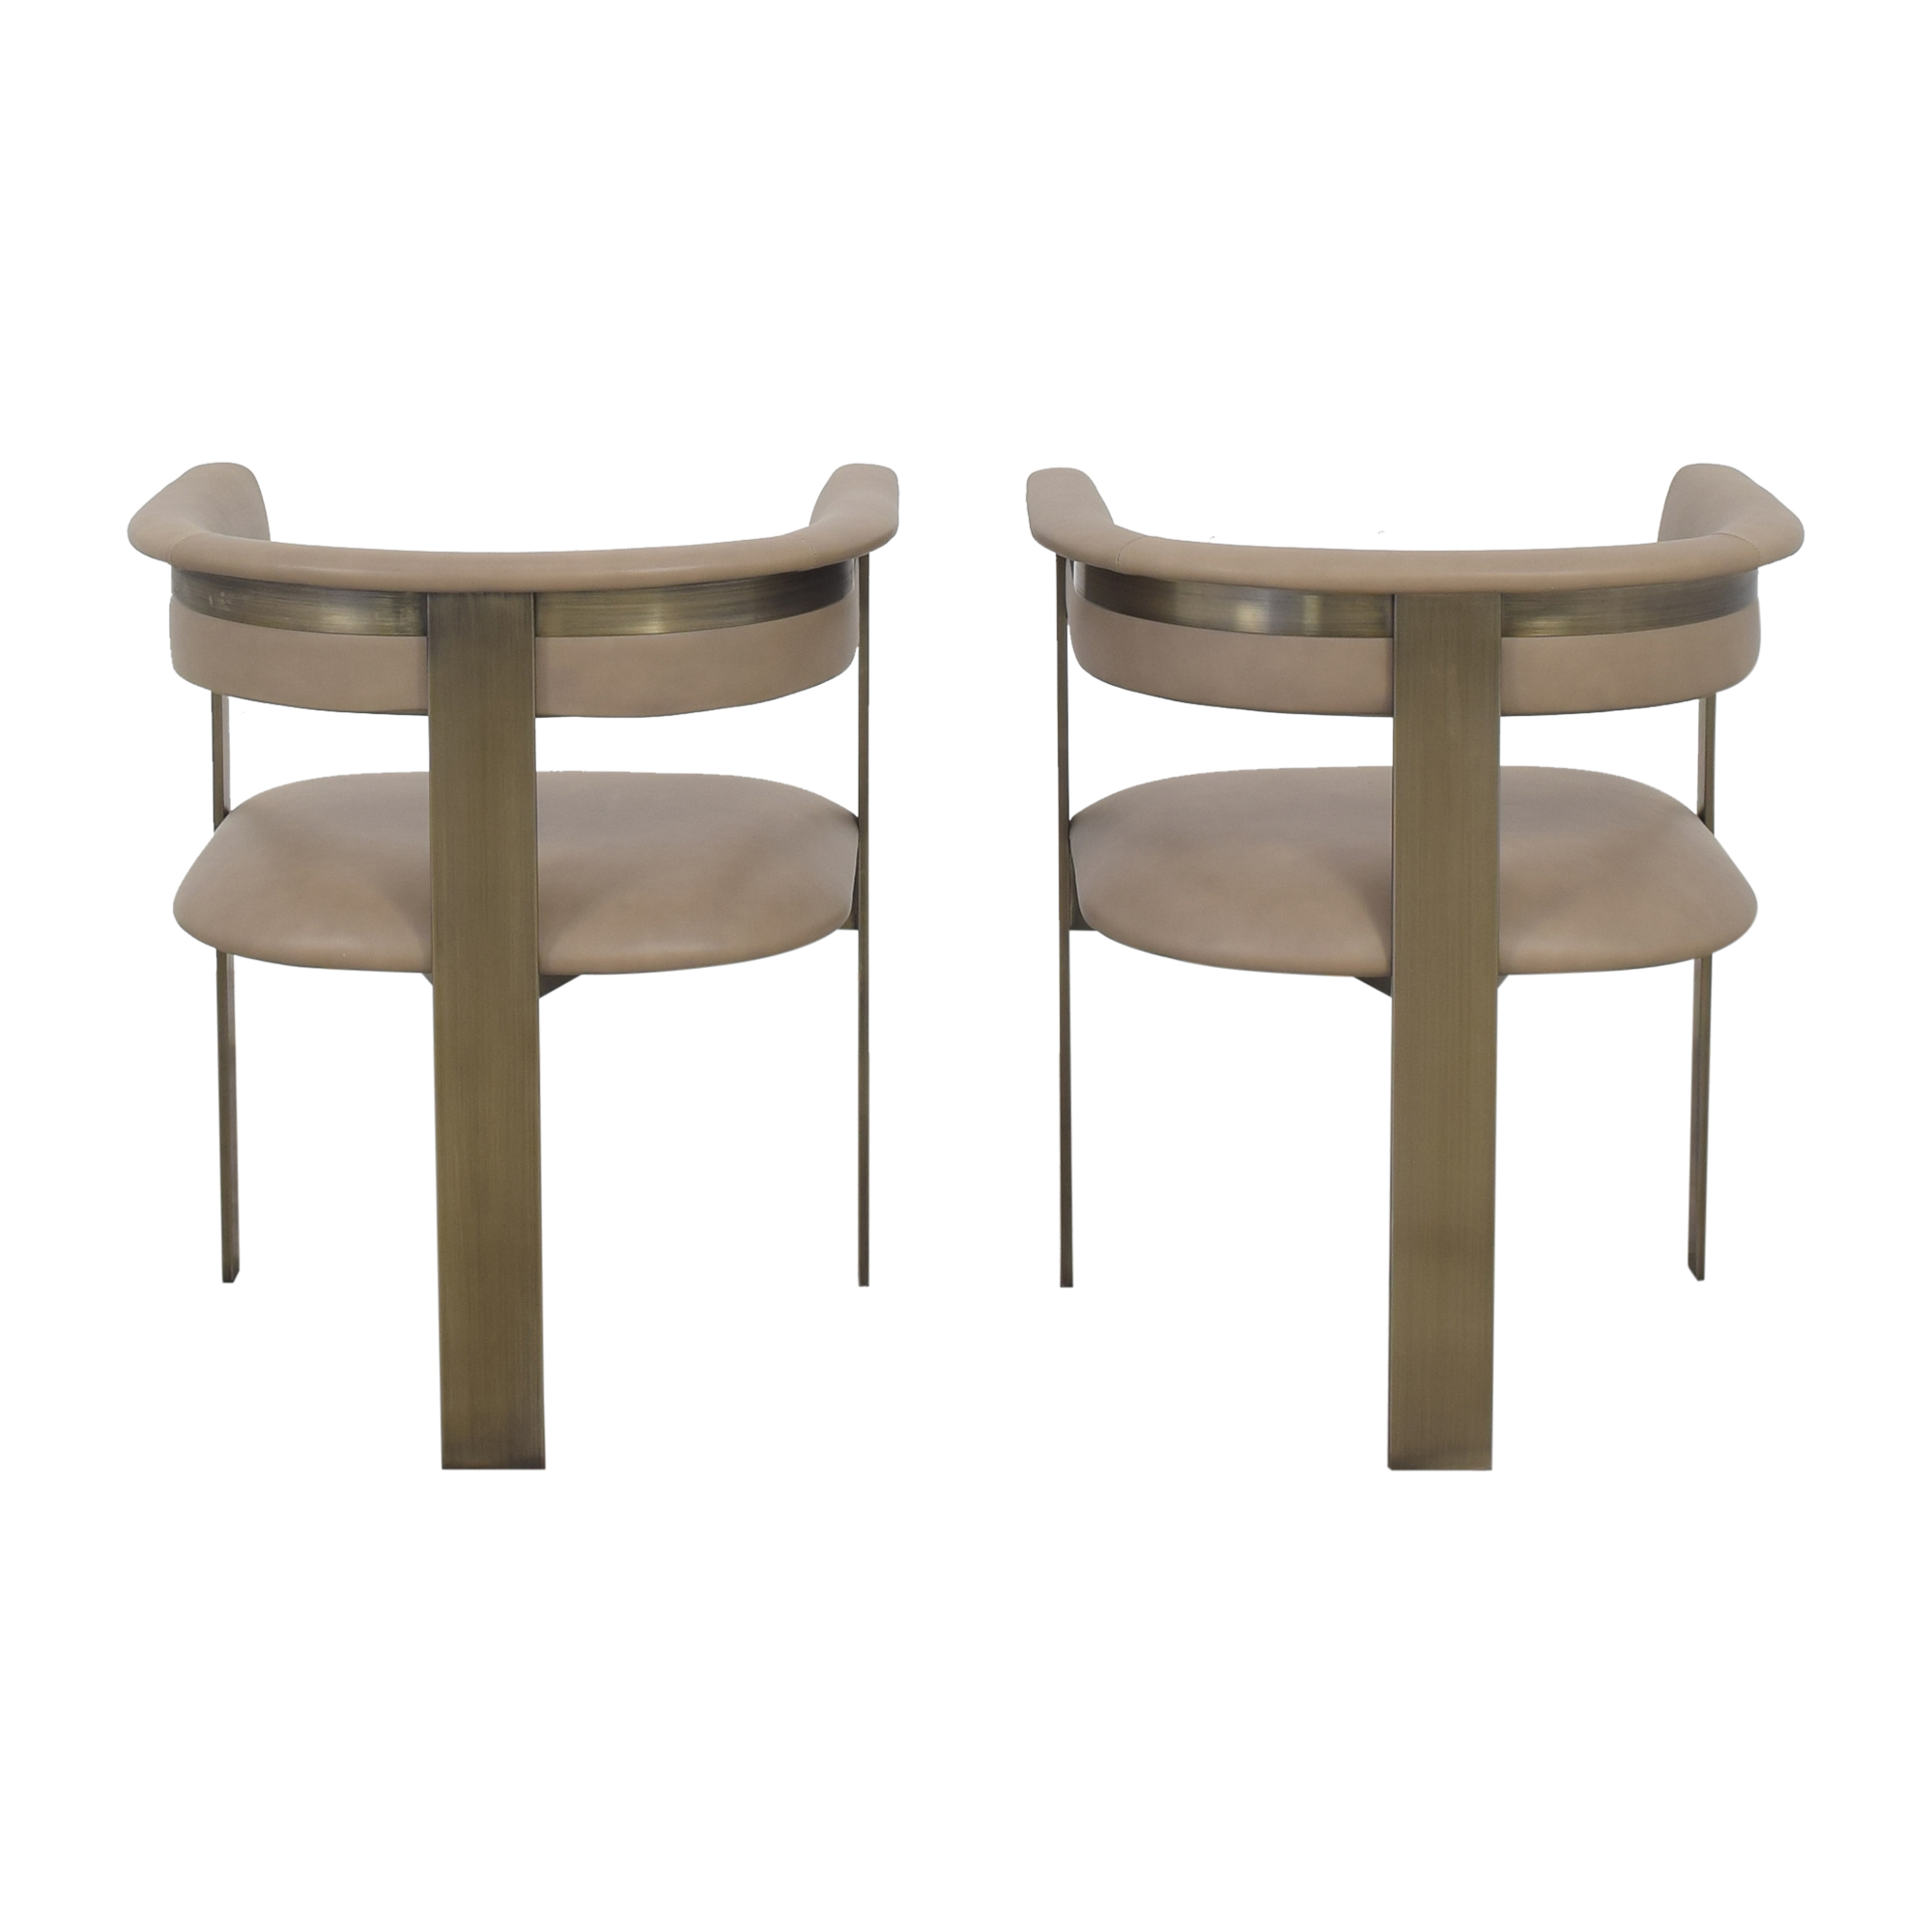 Interlude Home Interlude Home Darcy Dining Arm Chairs second hand